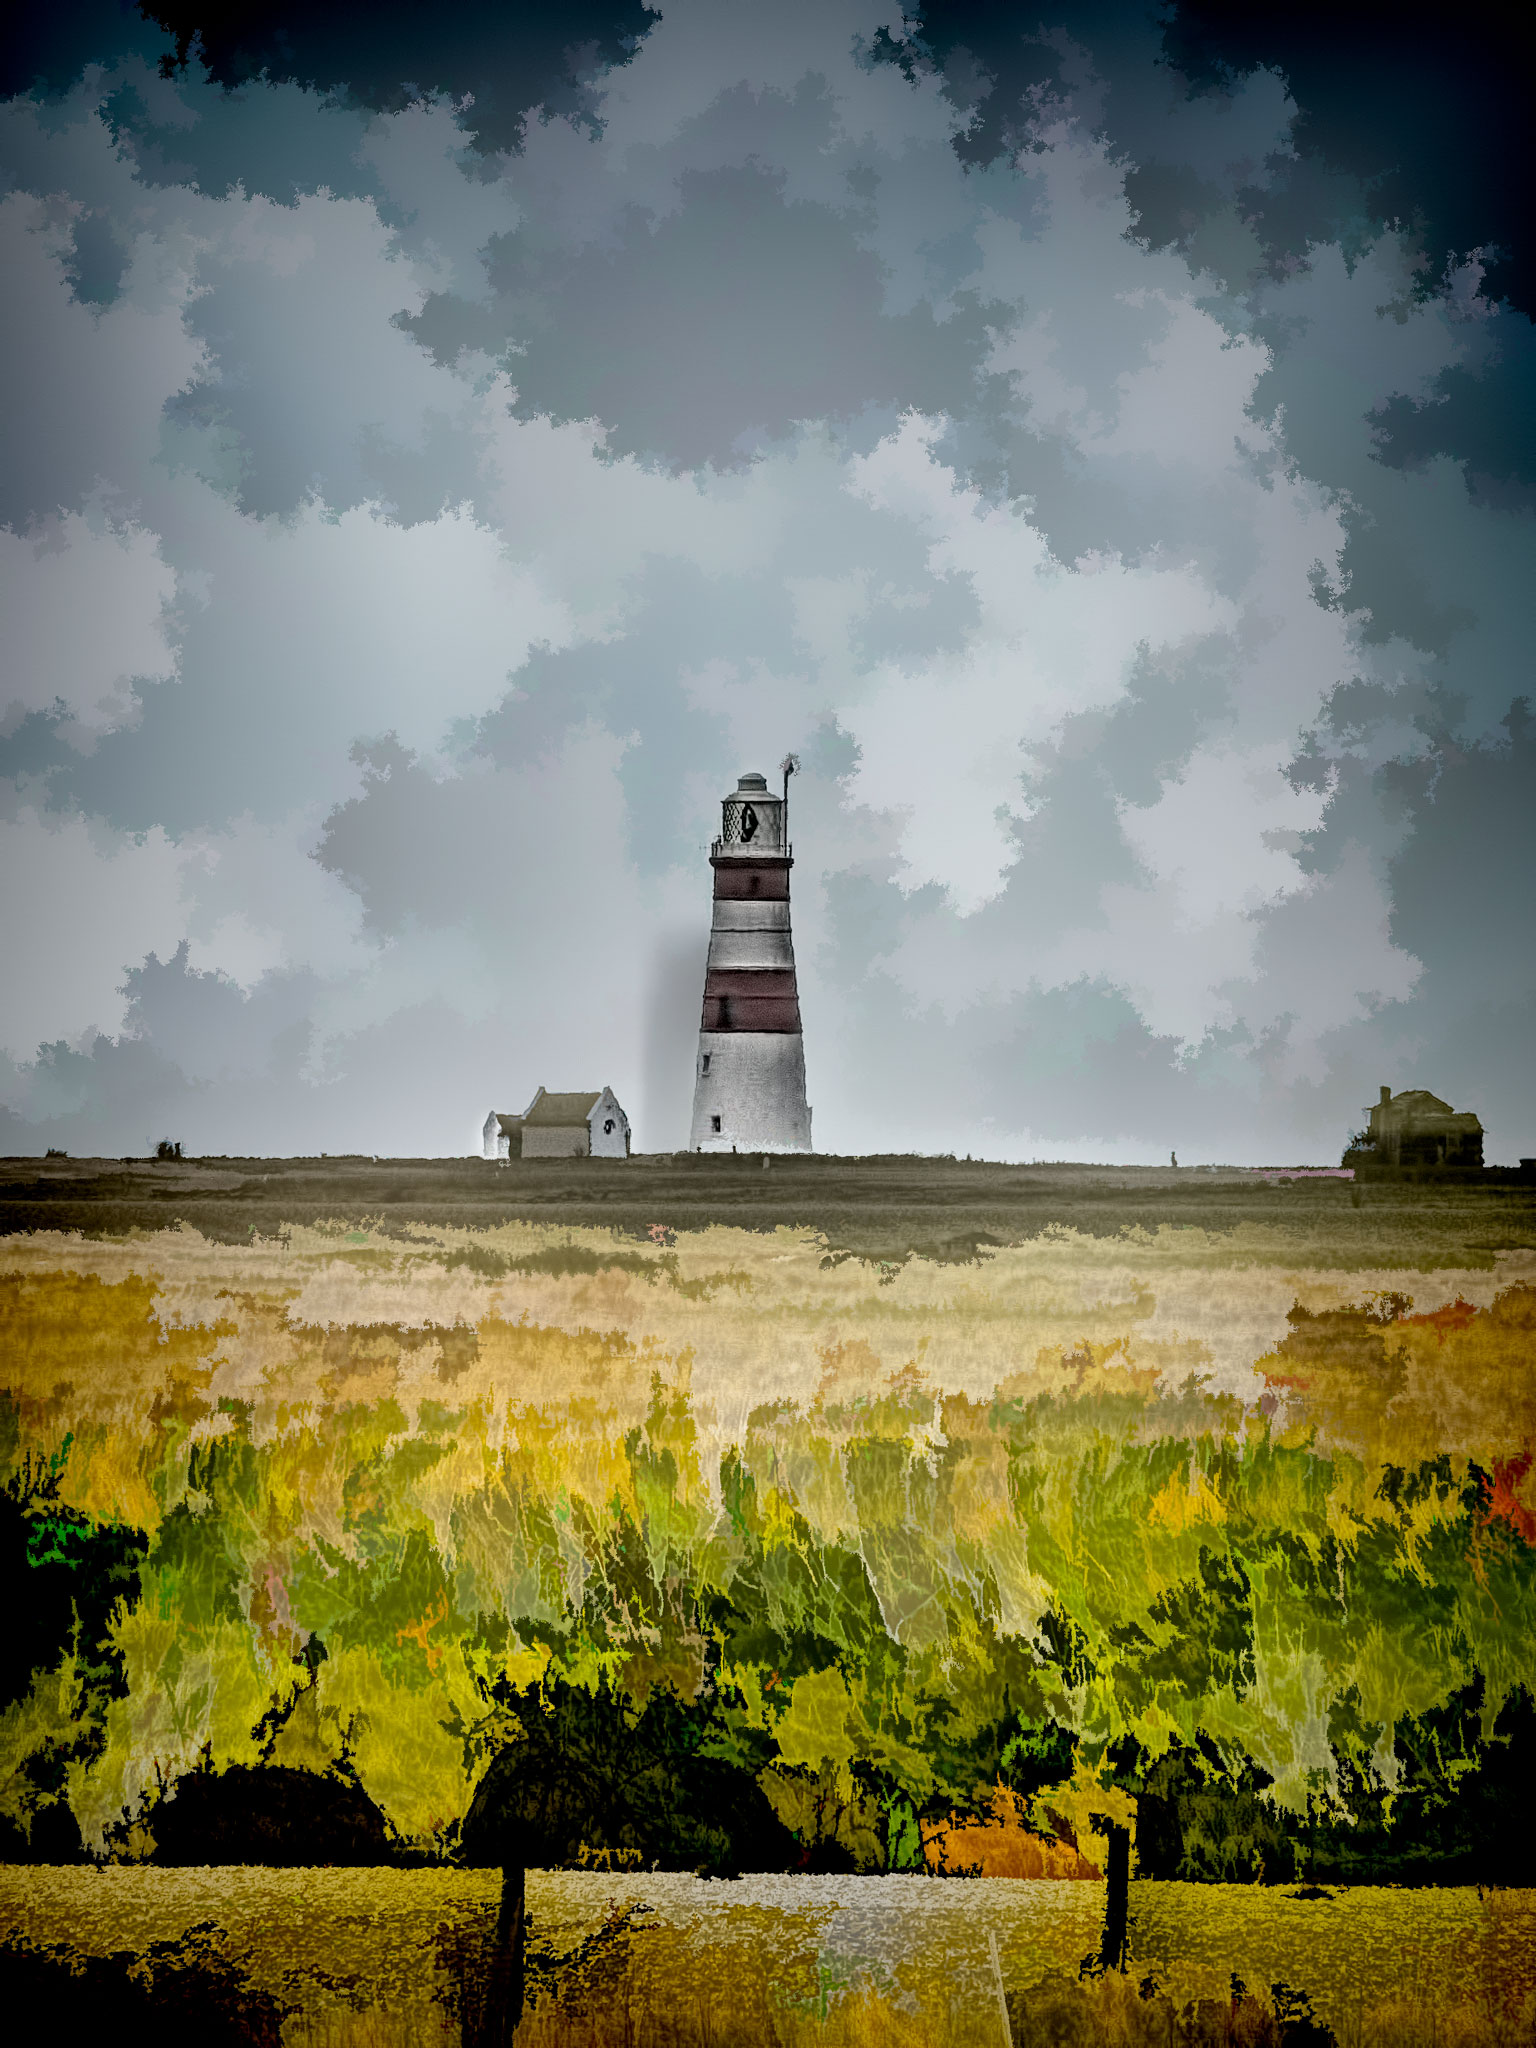 Photo: Orford Ness Lighthouse Orford, Suffolk, UK  I took, shall we say, a troubled photo. Underexposed, grainy, full of chroma noise. Yet I kind of liked it and always wished I had done a better job of it.  In the intervening years since the original JPEG capture (D'Oh!) #Photoshop , #Lightroom and various plugins have added marvelous capacity for rescuing what would otherwise be binned photos. I don't know about you, but I depend on that added capacity quite a bit.  This picture was run through Lightroom 5, then passed over to Photoshop CC as a smart object before applying #TopazDenoise , #TopazDetail5  and #TopazSimplify , in that order.  #Travel  #England  #Orford  #OrfordNess  #Lighthouse